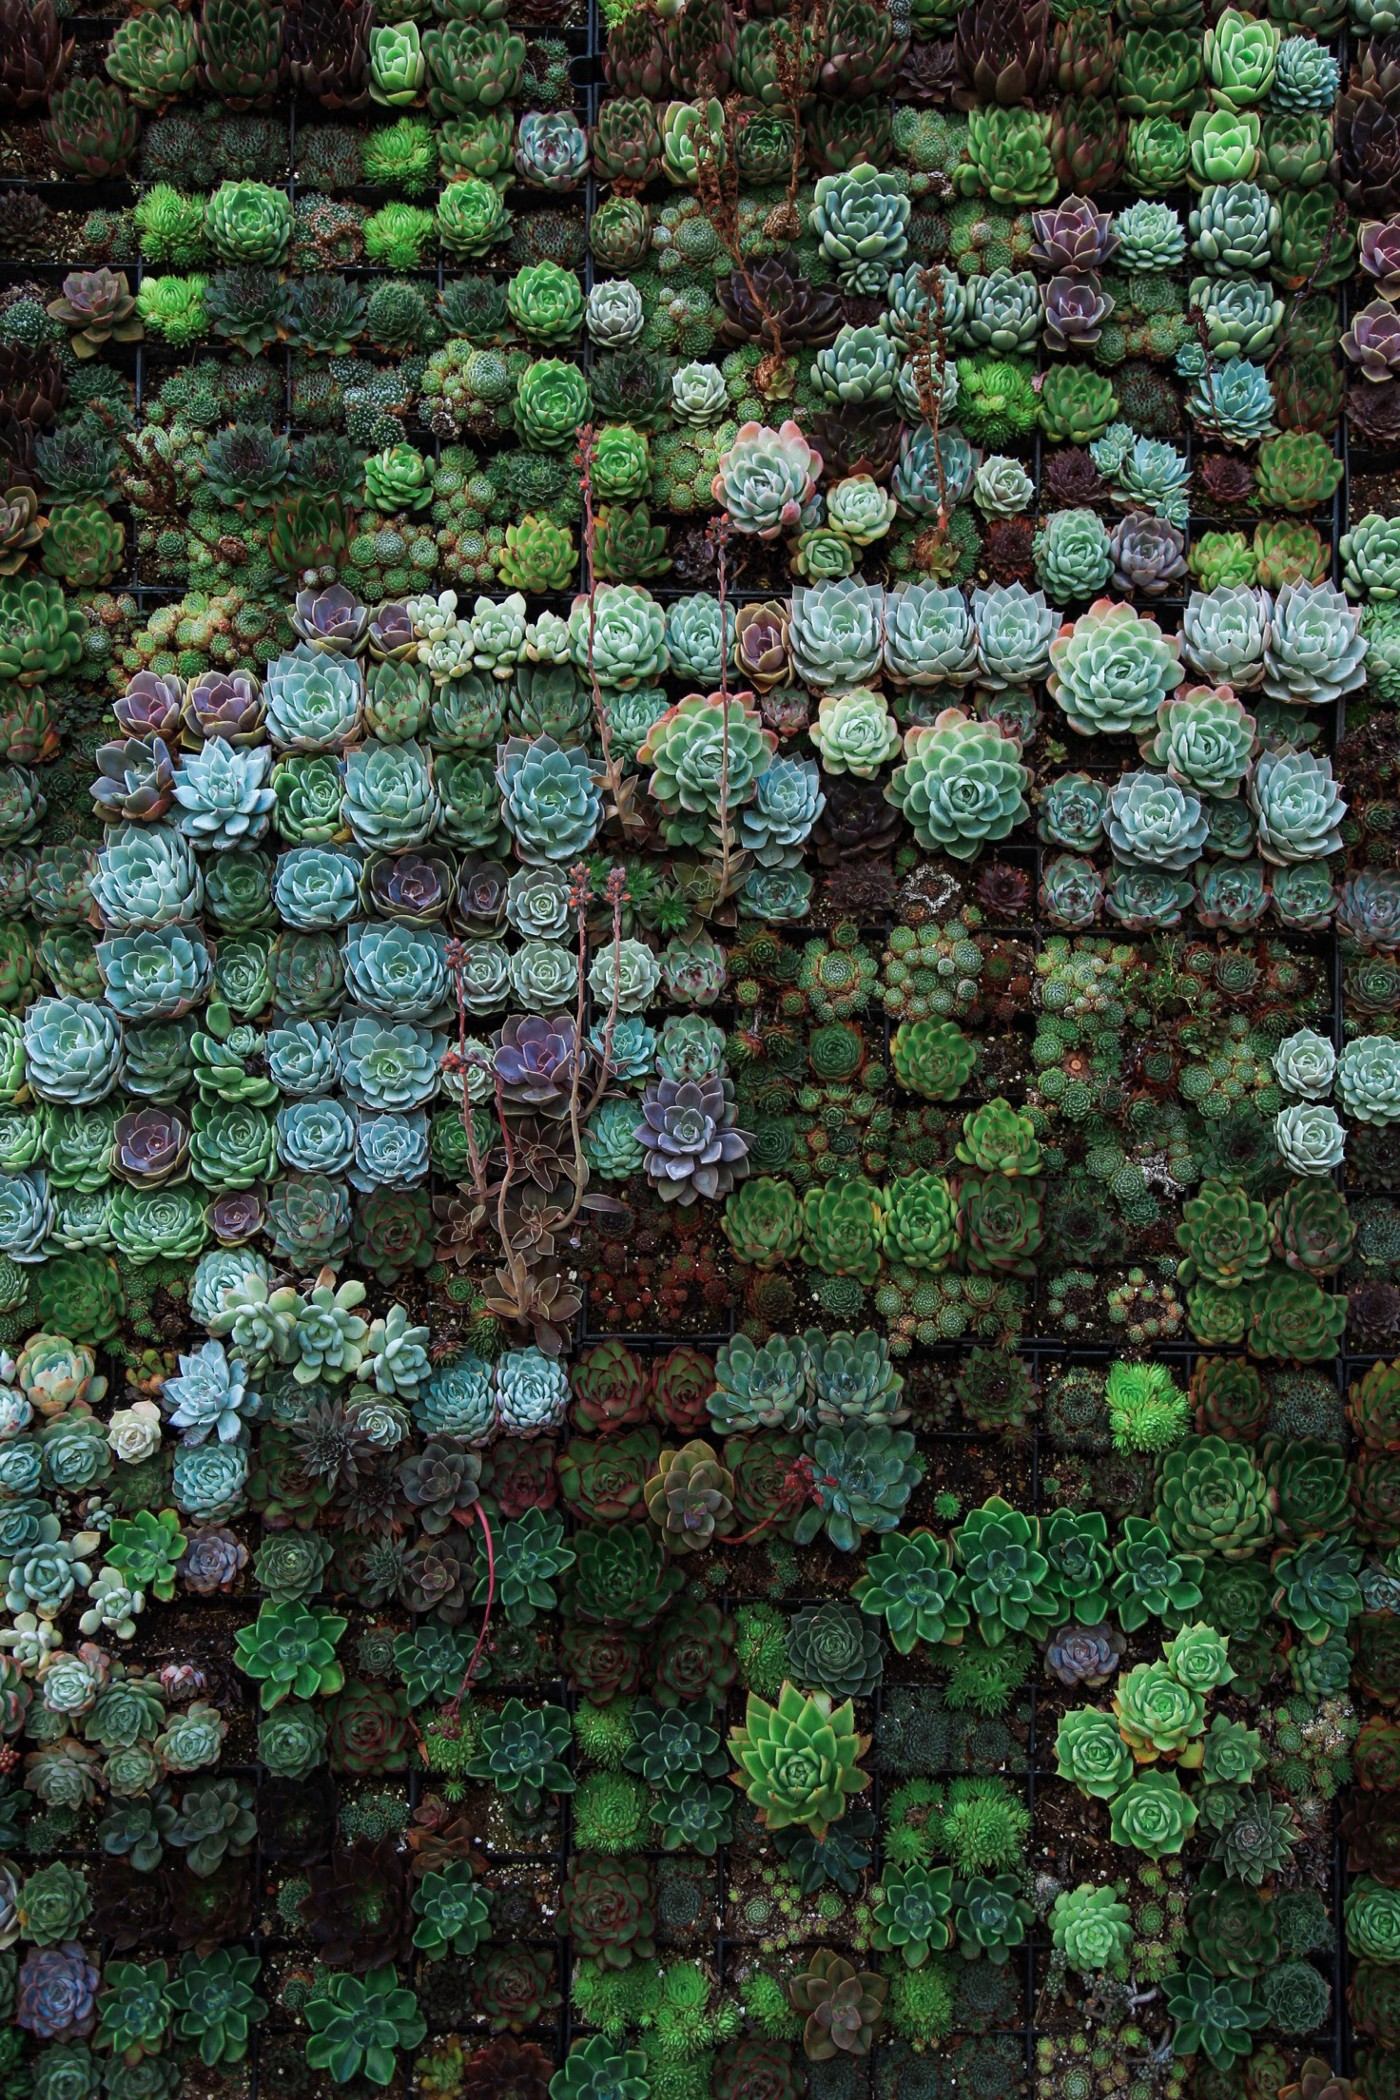 A photo of thosuands small succulent plants neatly arranged one next to the other.